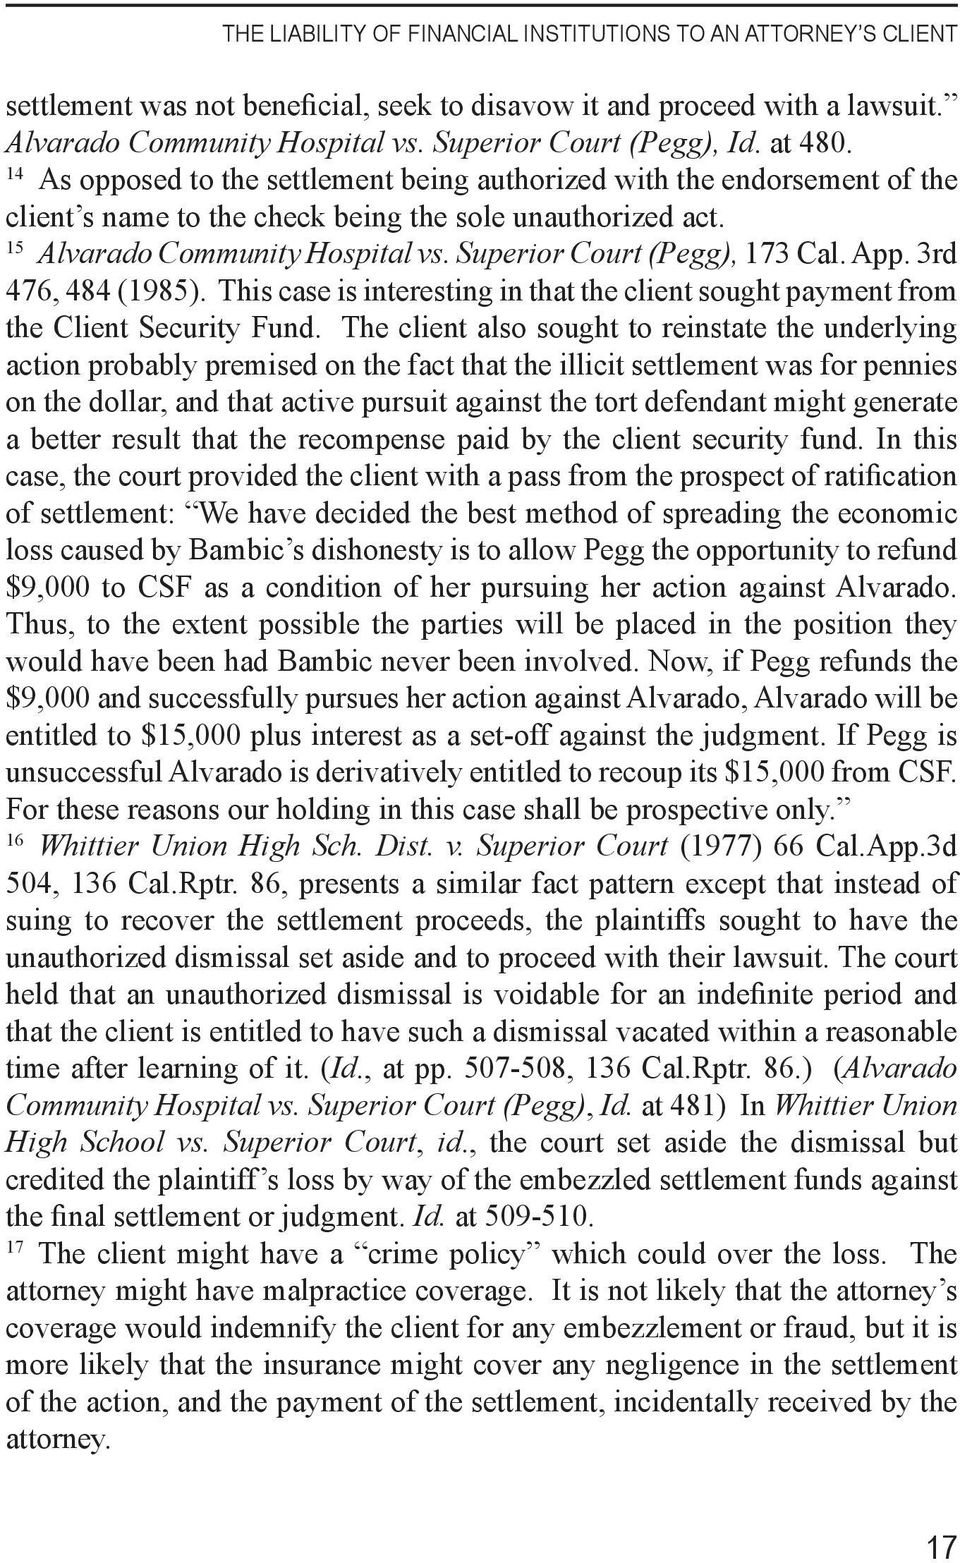 Superior Court (Pegg), 173 Cal. App. 3rd 476, 484 (1985). This case is interesting in that the client sought payment from the Client Security Fund.